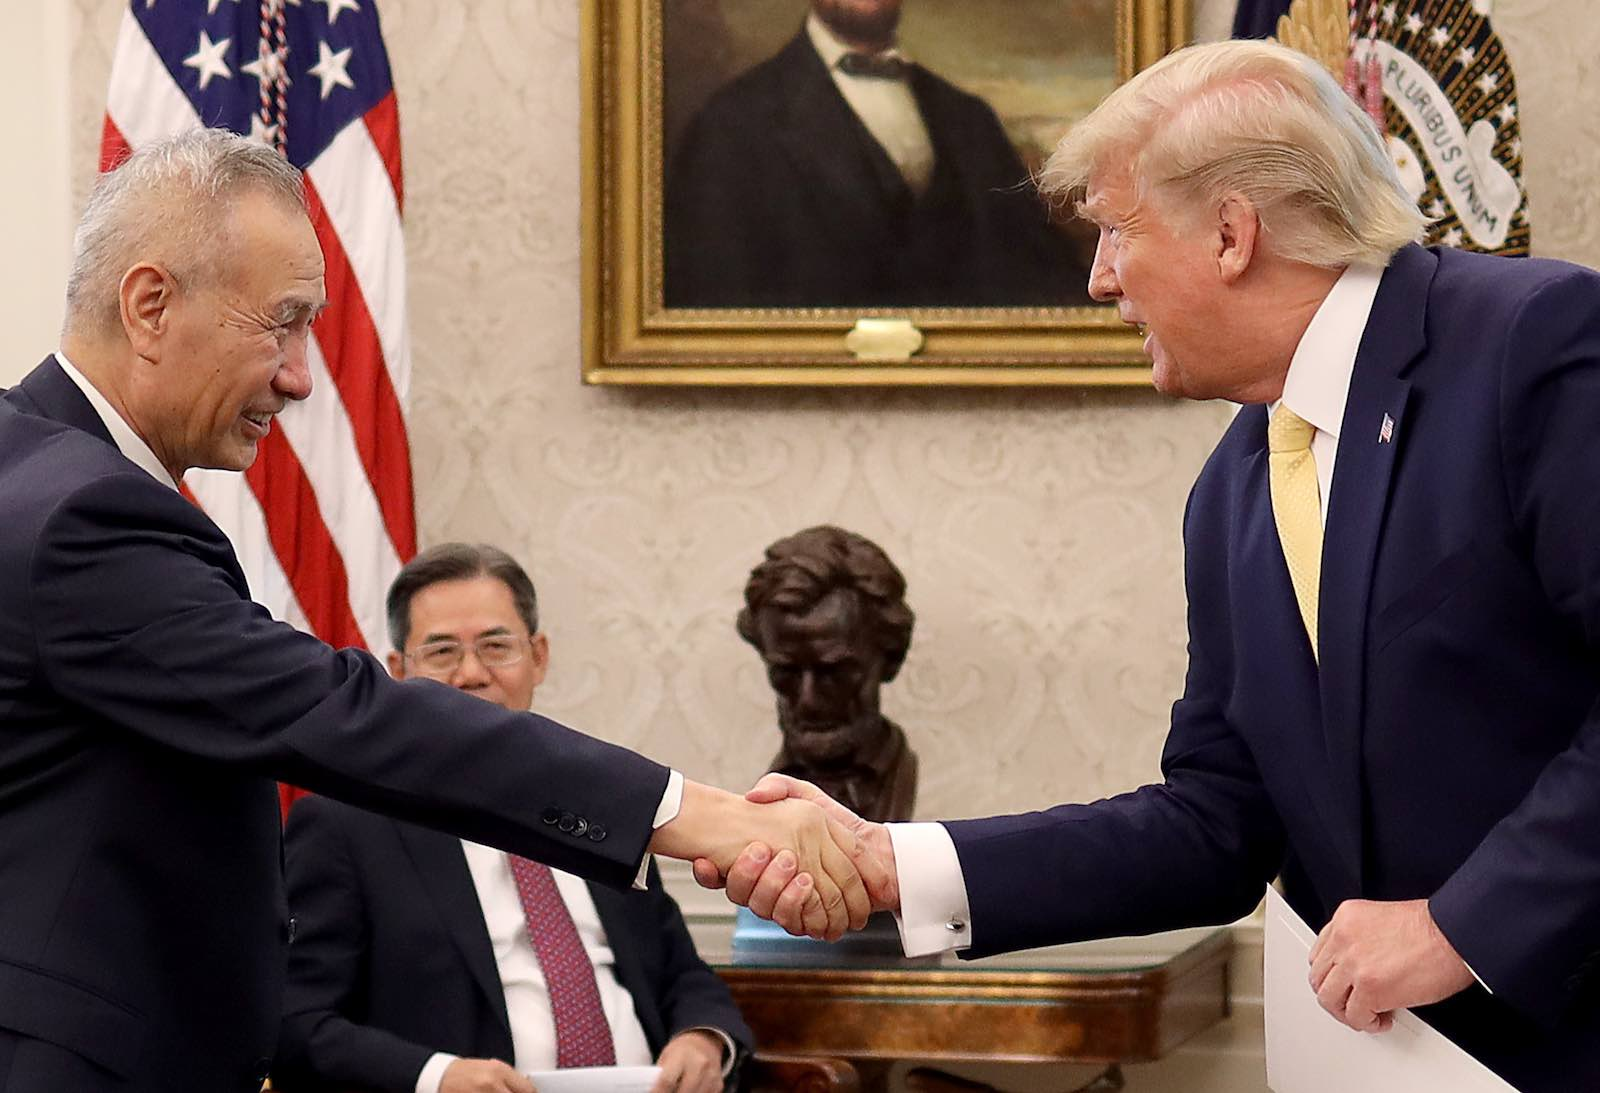 """President Donald Trump shakes hands with Chinese Vice Premier Liu He after announcing a """"phase one"""" trade agreement with China in the Oval Office on Friday (Photo: Win McNamee/Getty Images)"""